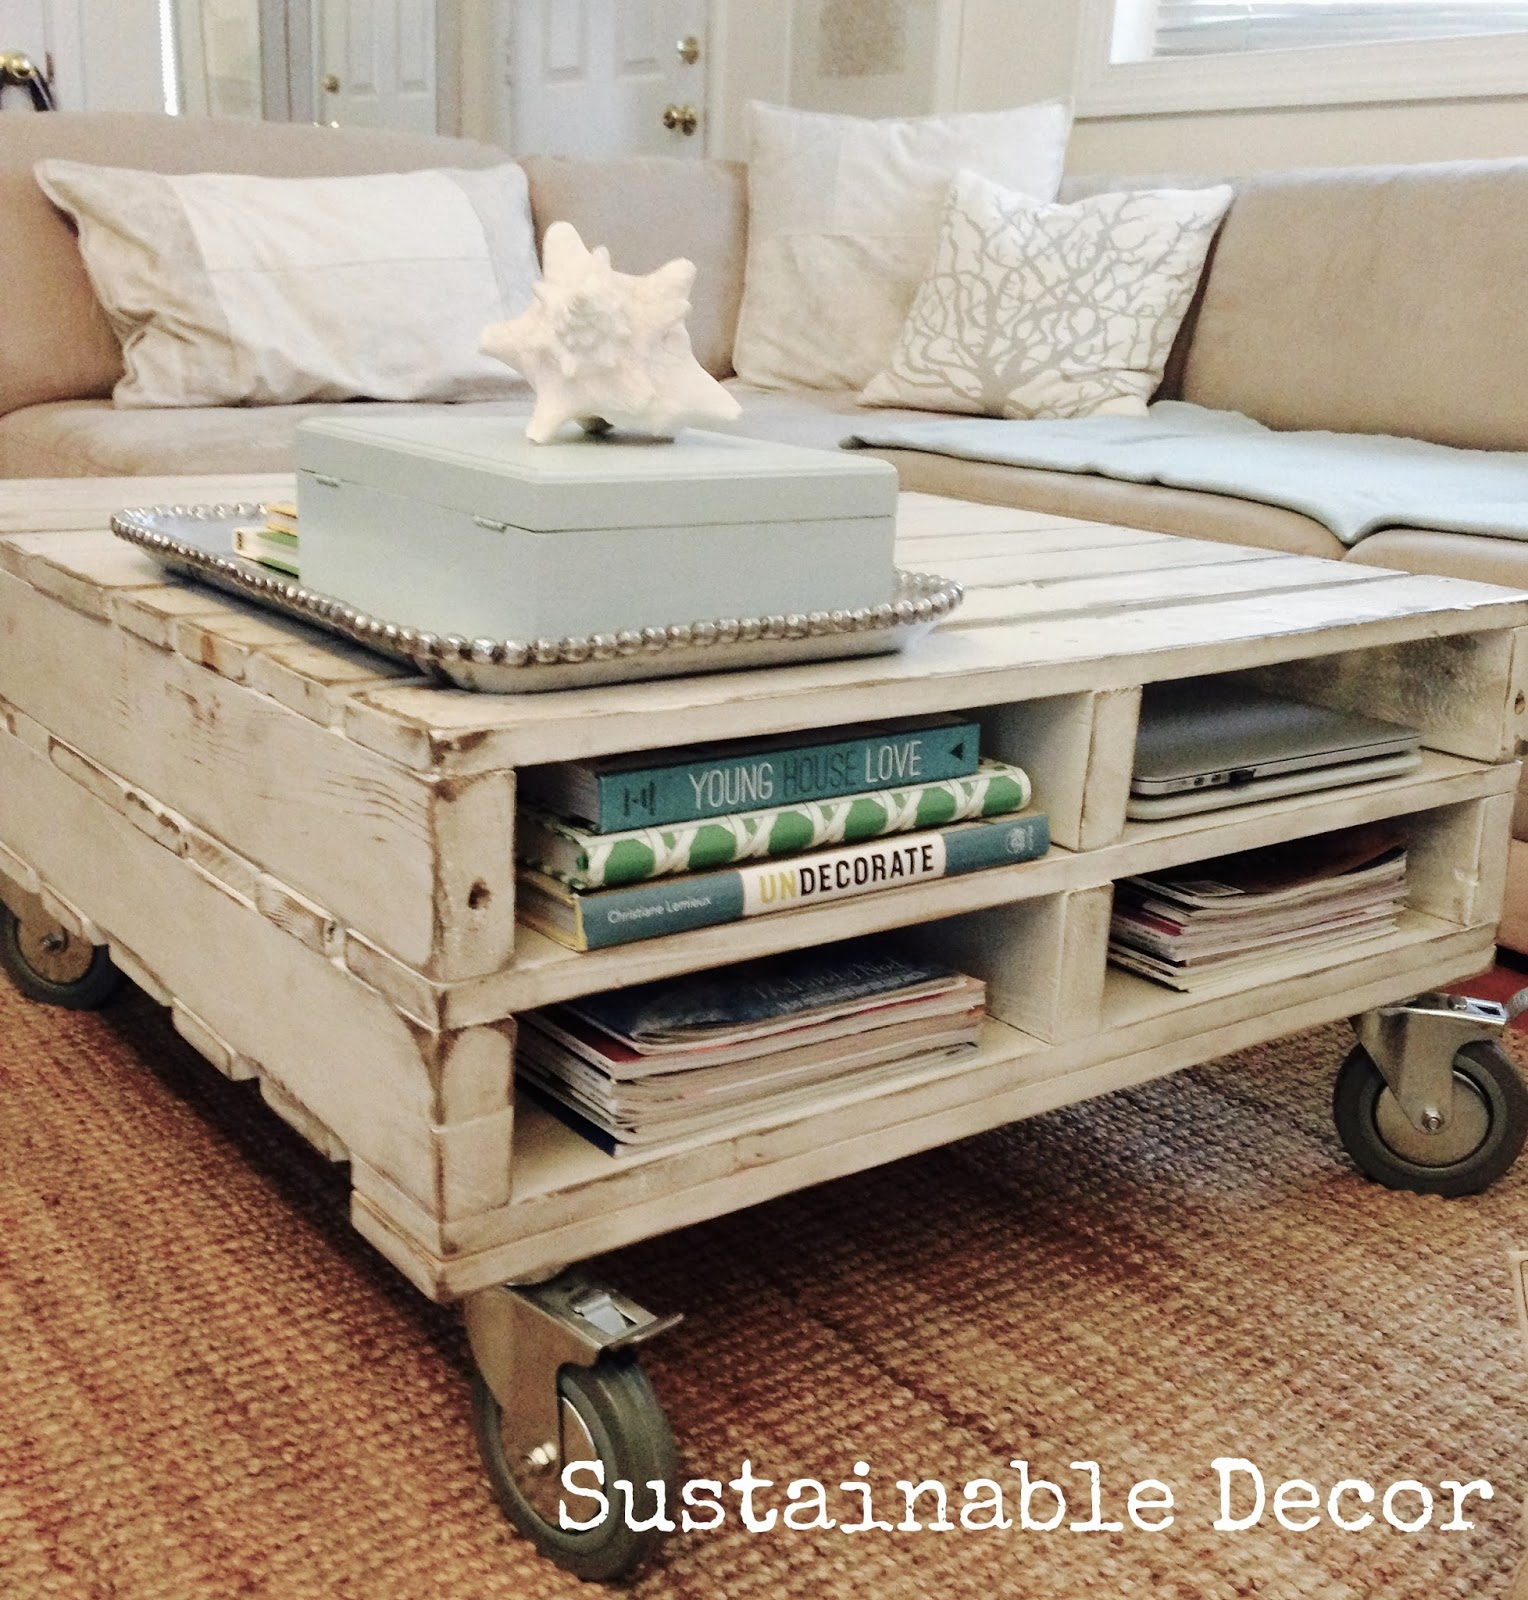 Sustainable decor upcycled pallet coffee table for Pallet furniture projects